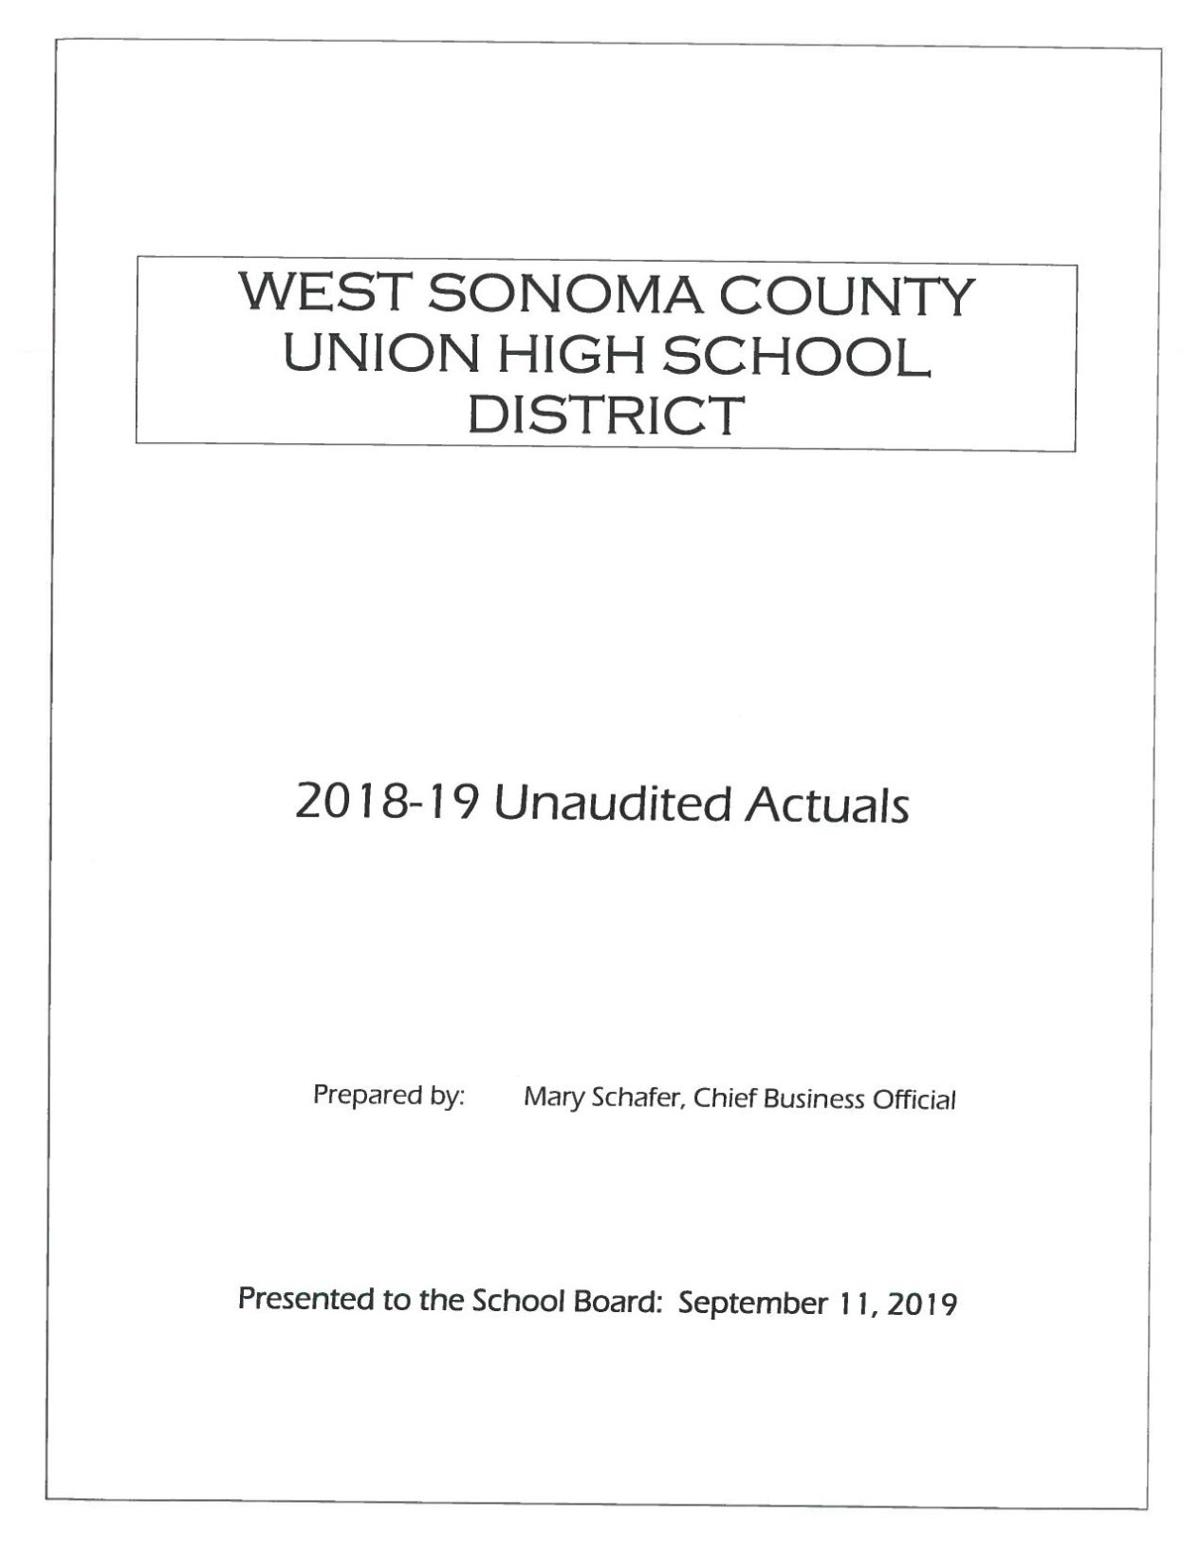 Unaudited actuals for 2018-19: What the district actually spent